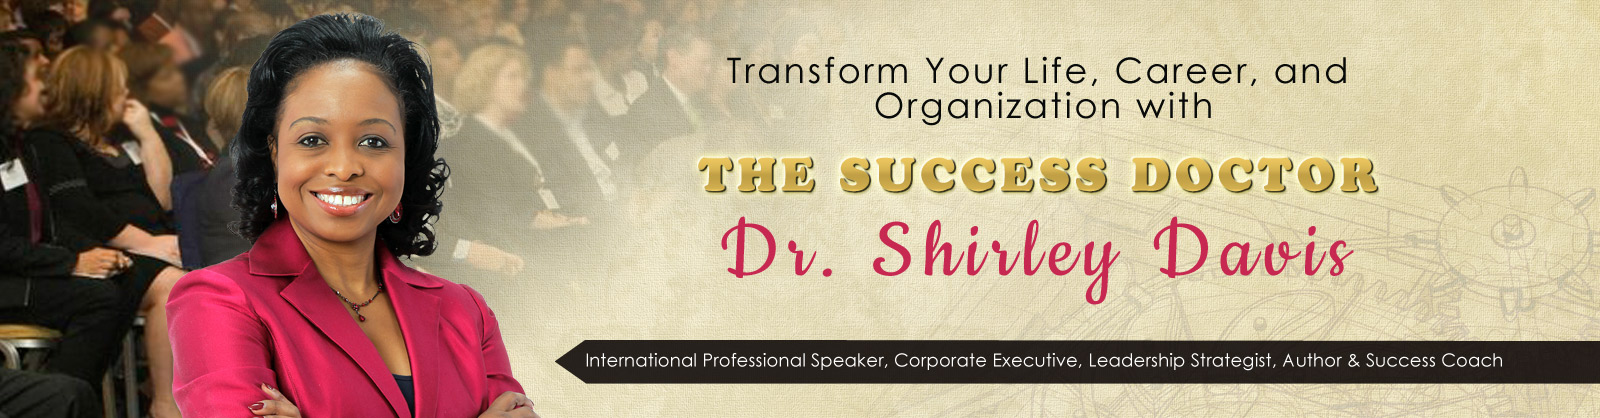 Have Dr. Shirley Davis take your life, career and organization to the next level